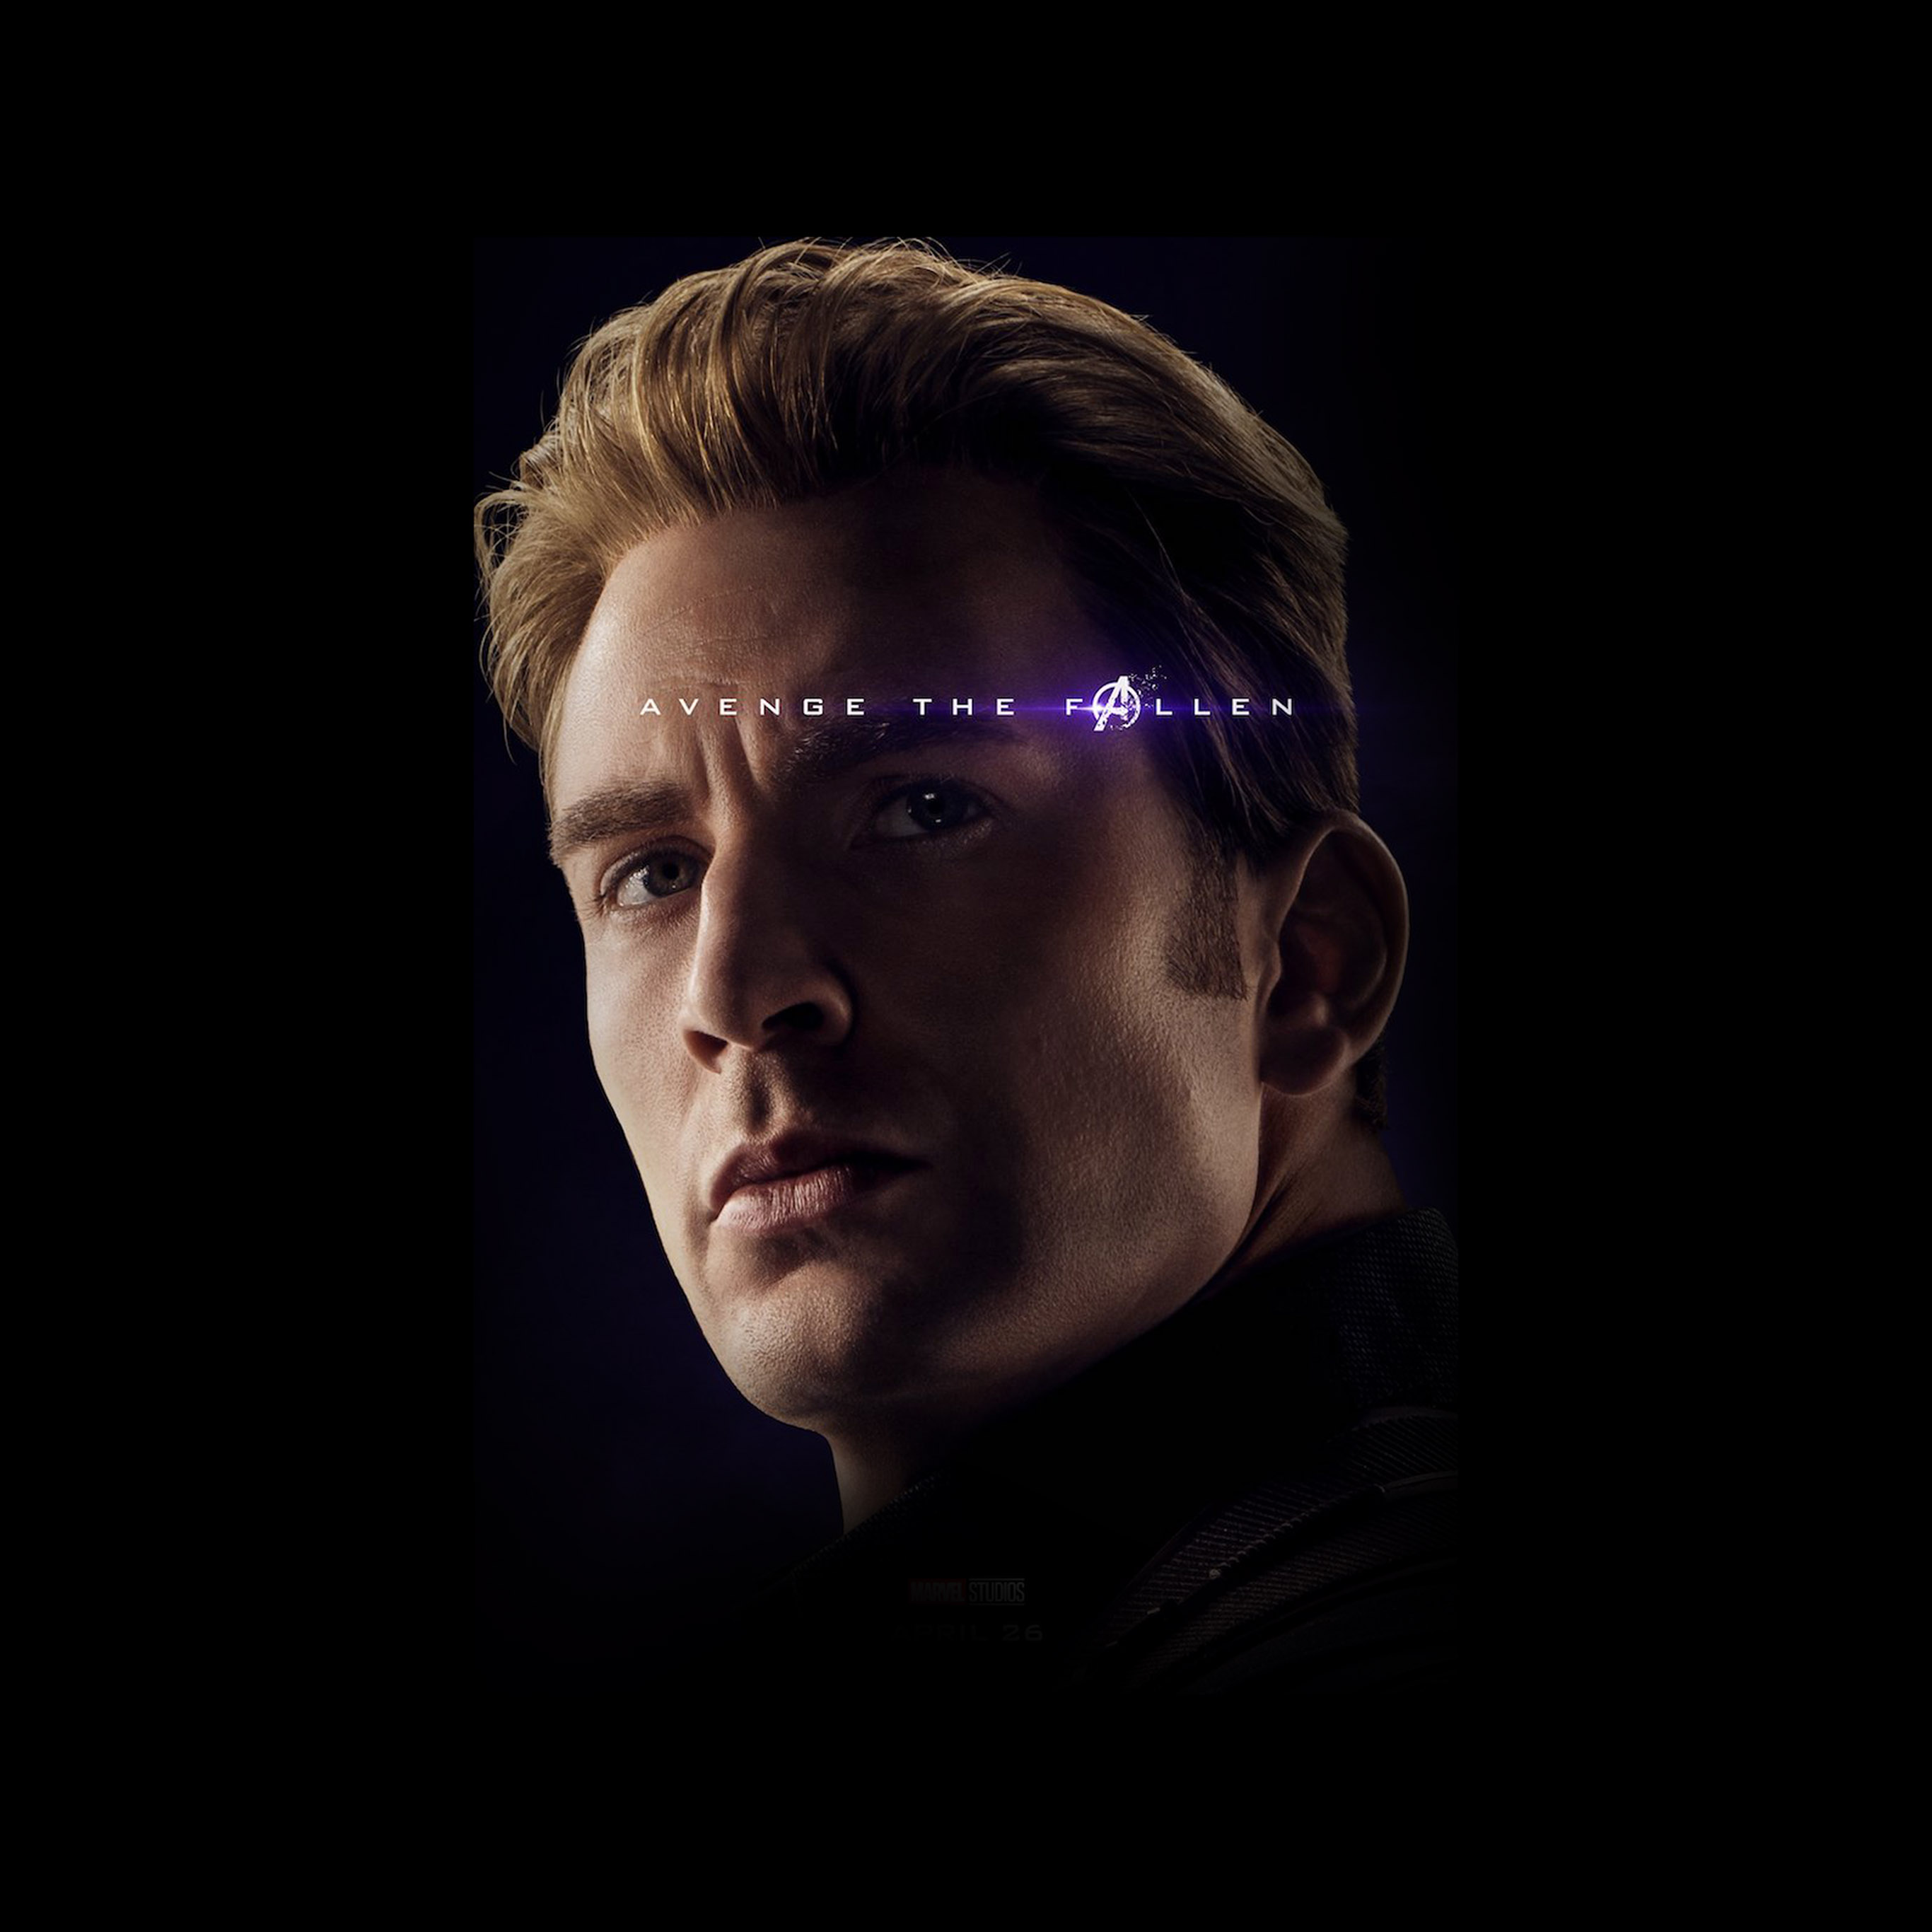 Bi56 Captain America Avengers Endgame Hero Film Marvel Art Wallpaper